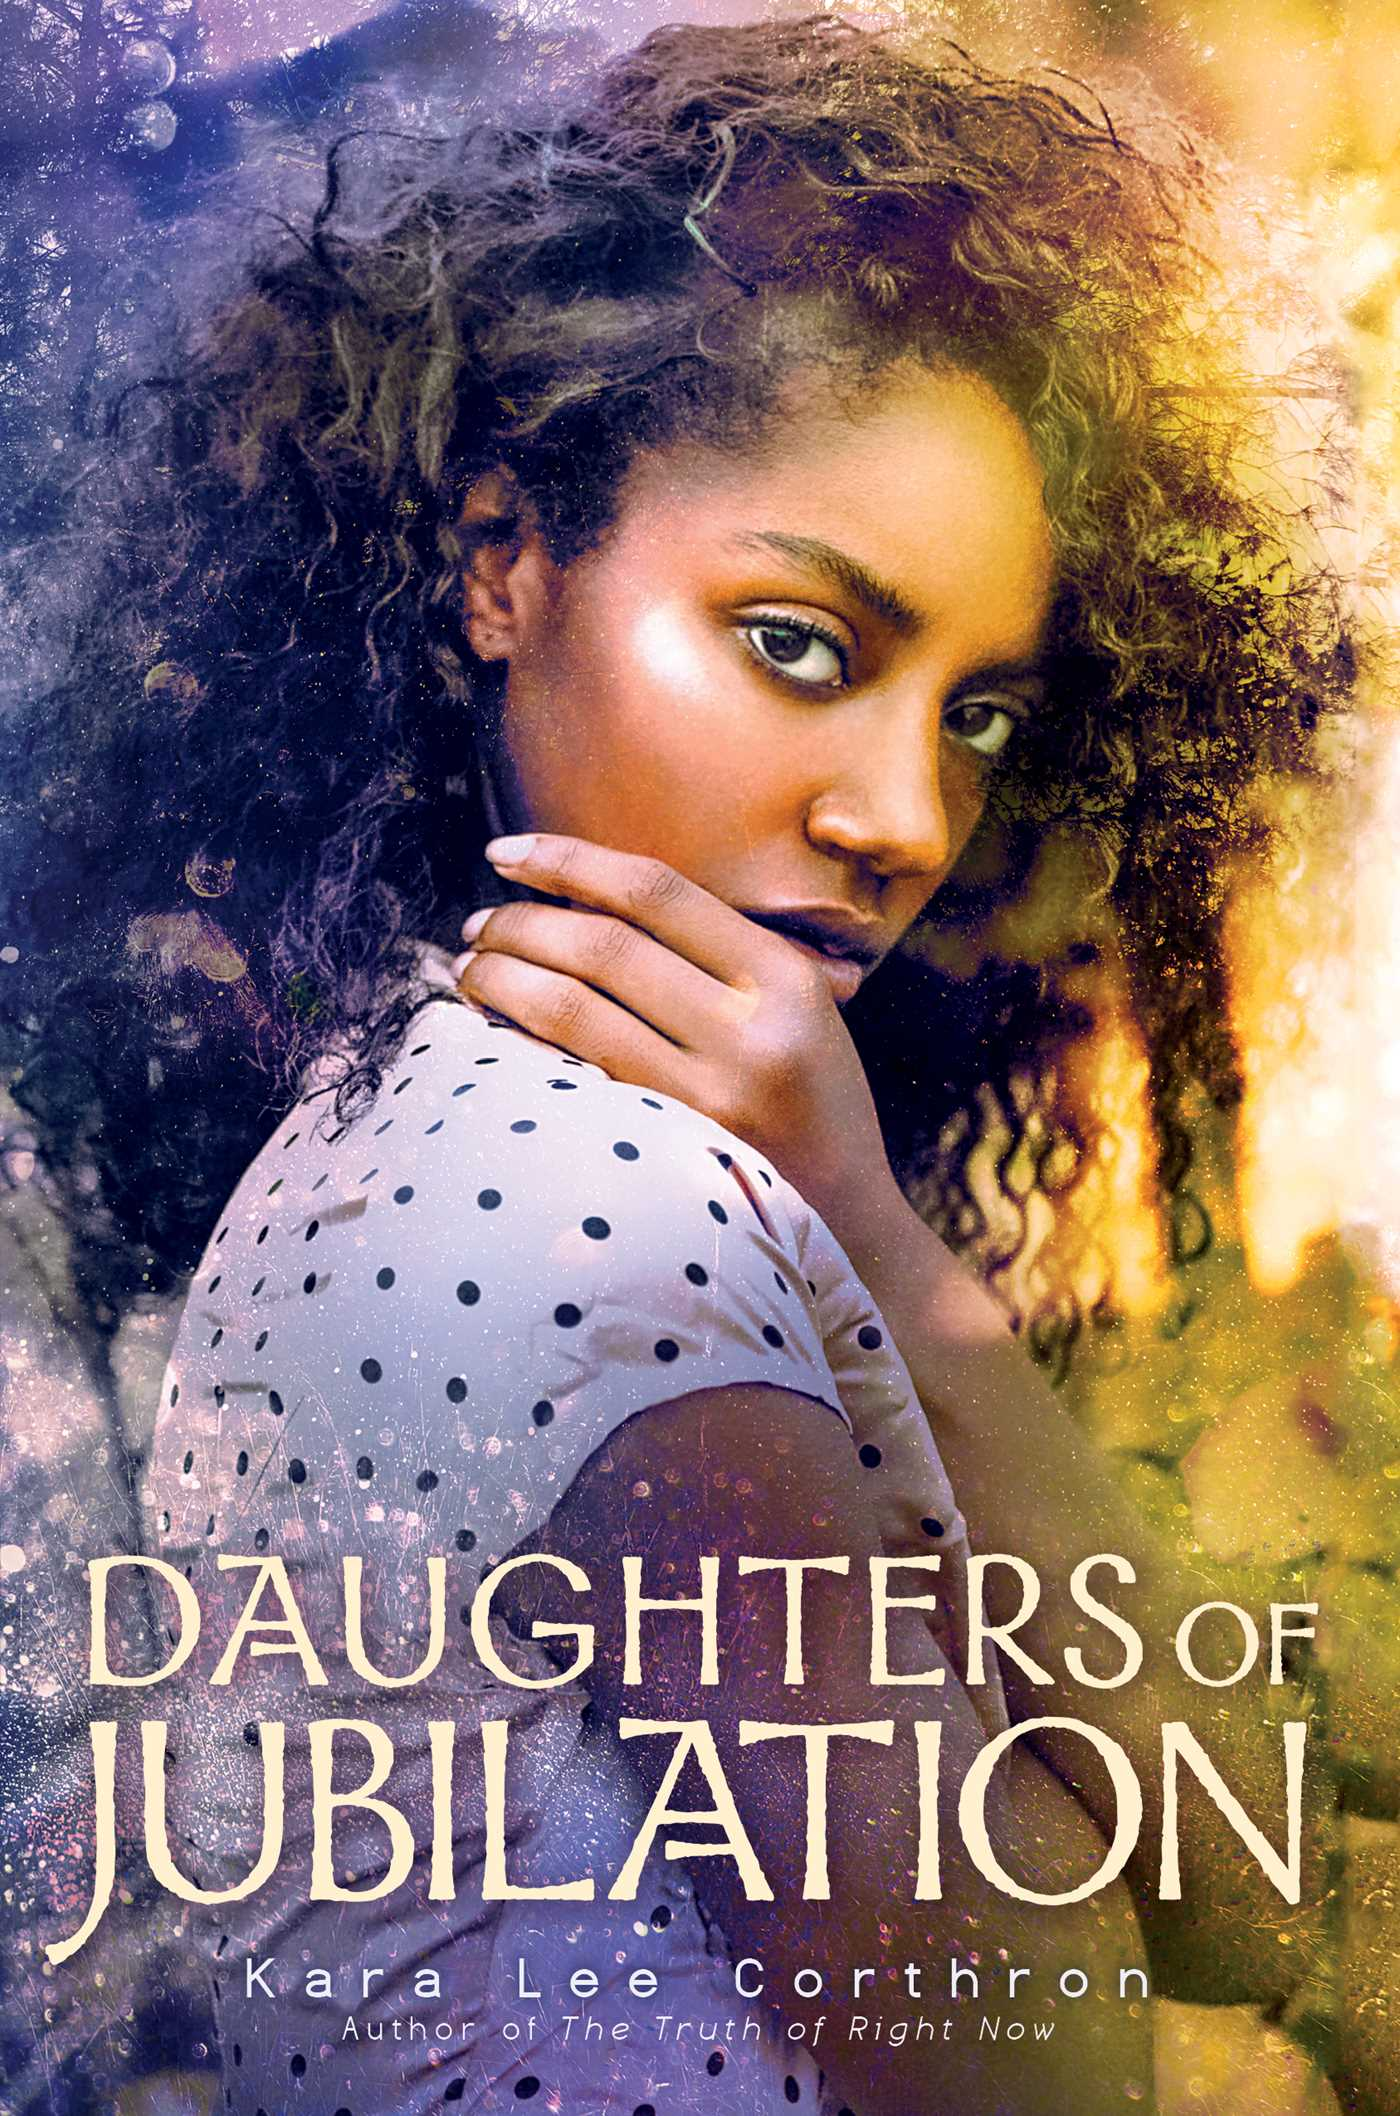 Daughters of Jubilation by Kara Lee Corthron